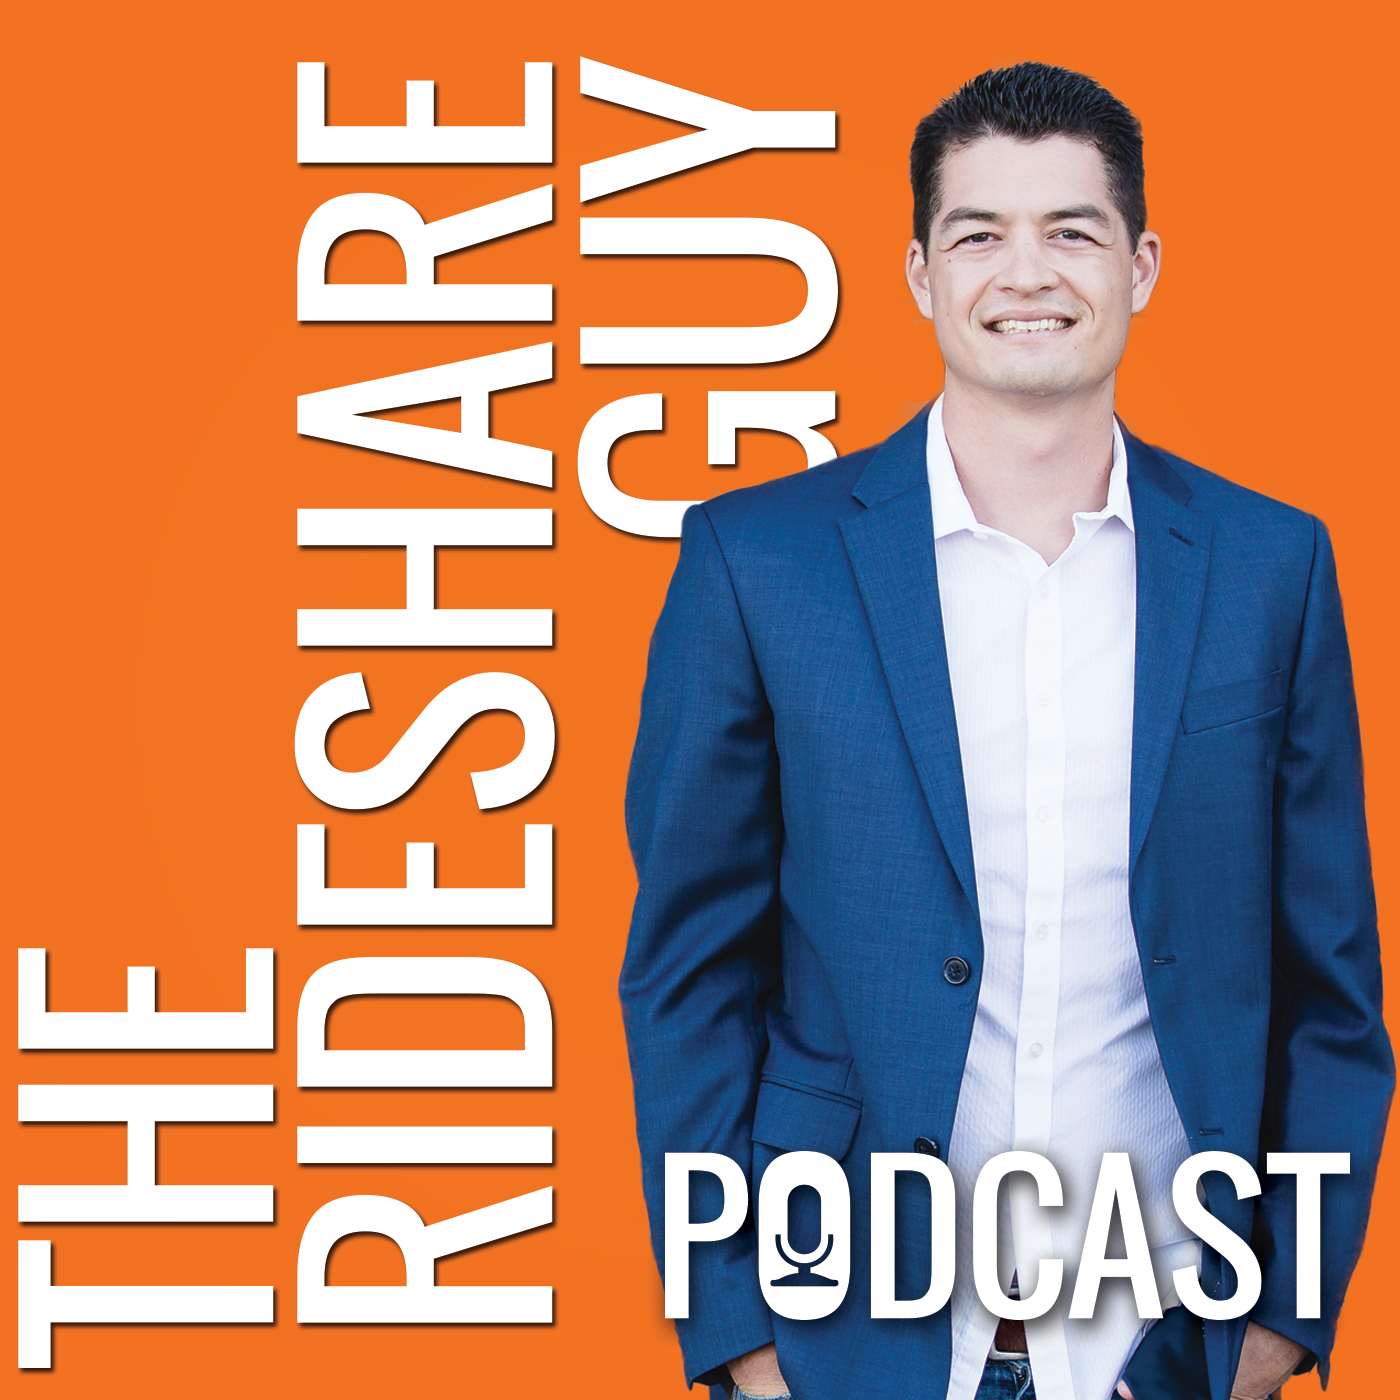 The Rideshare Guy Podcast : A Community for Rideshare Drivers | Uber | Lyft | Postmates | DoorDash